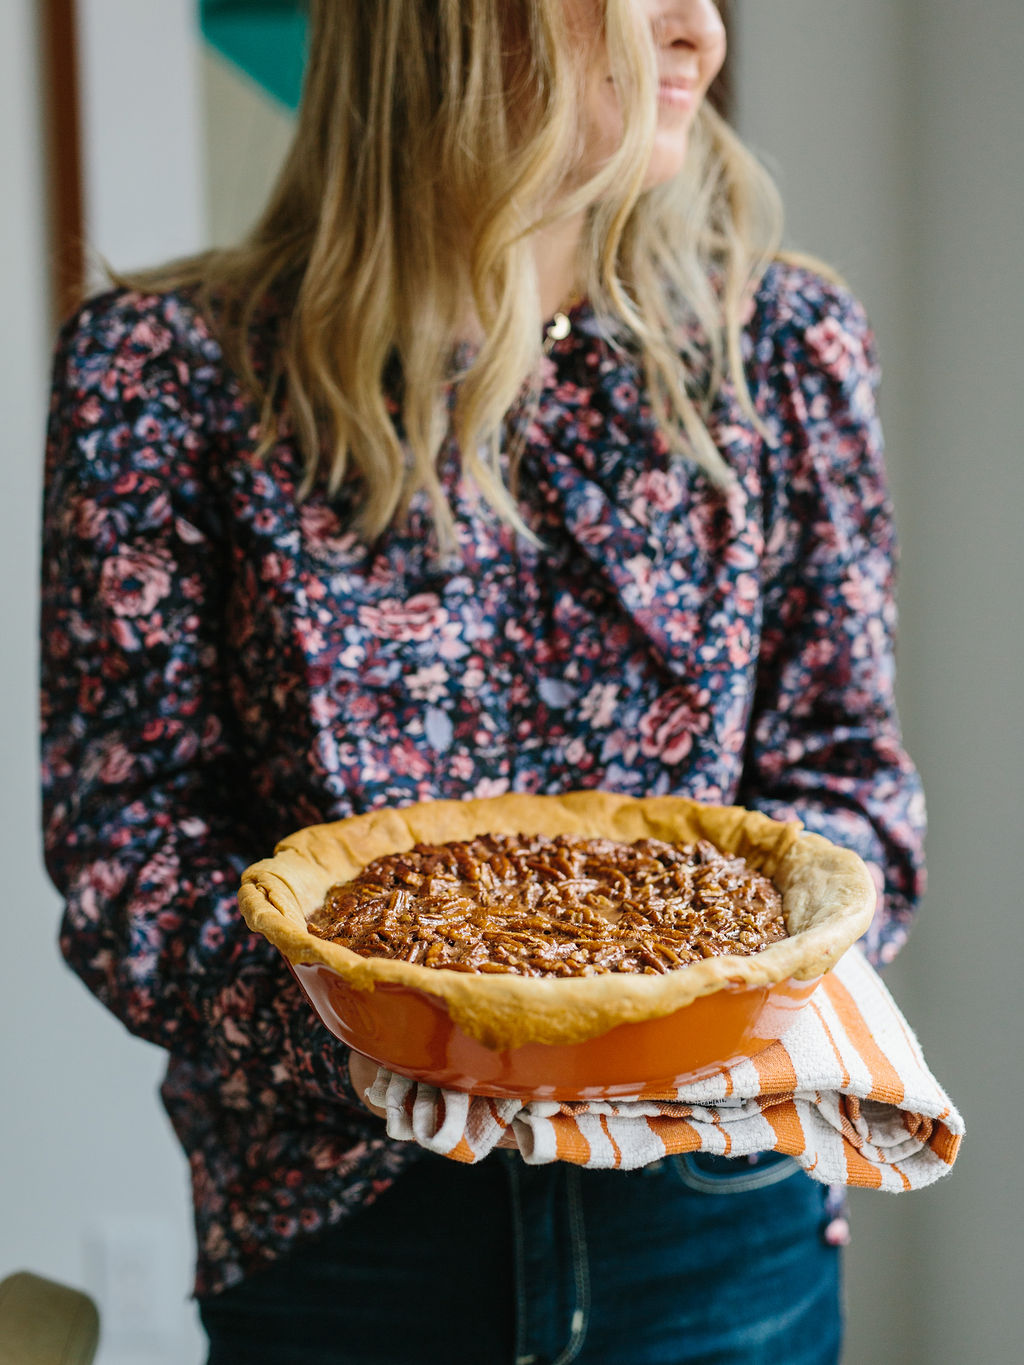 A baked bourbon and chocolate pecan pie being held in a pie dish